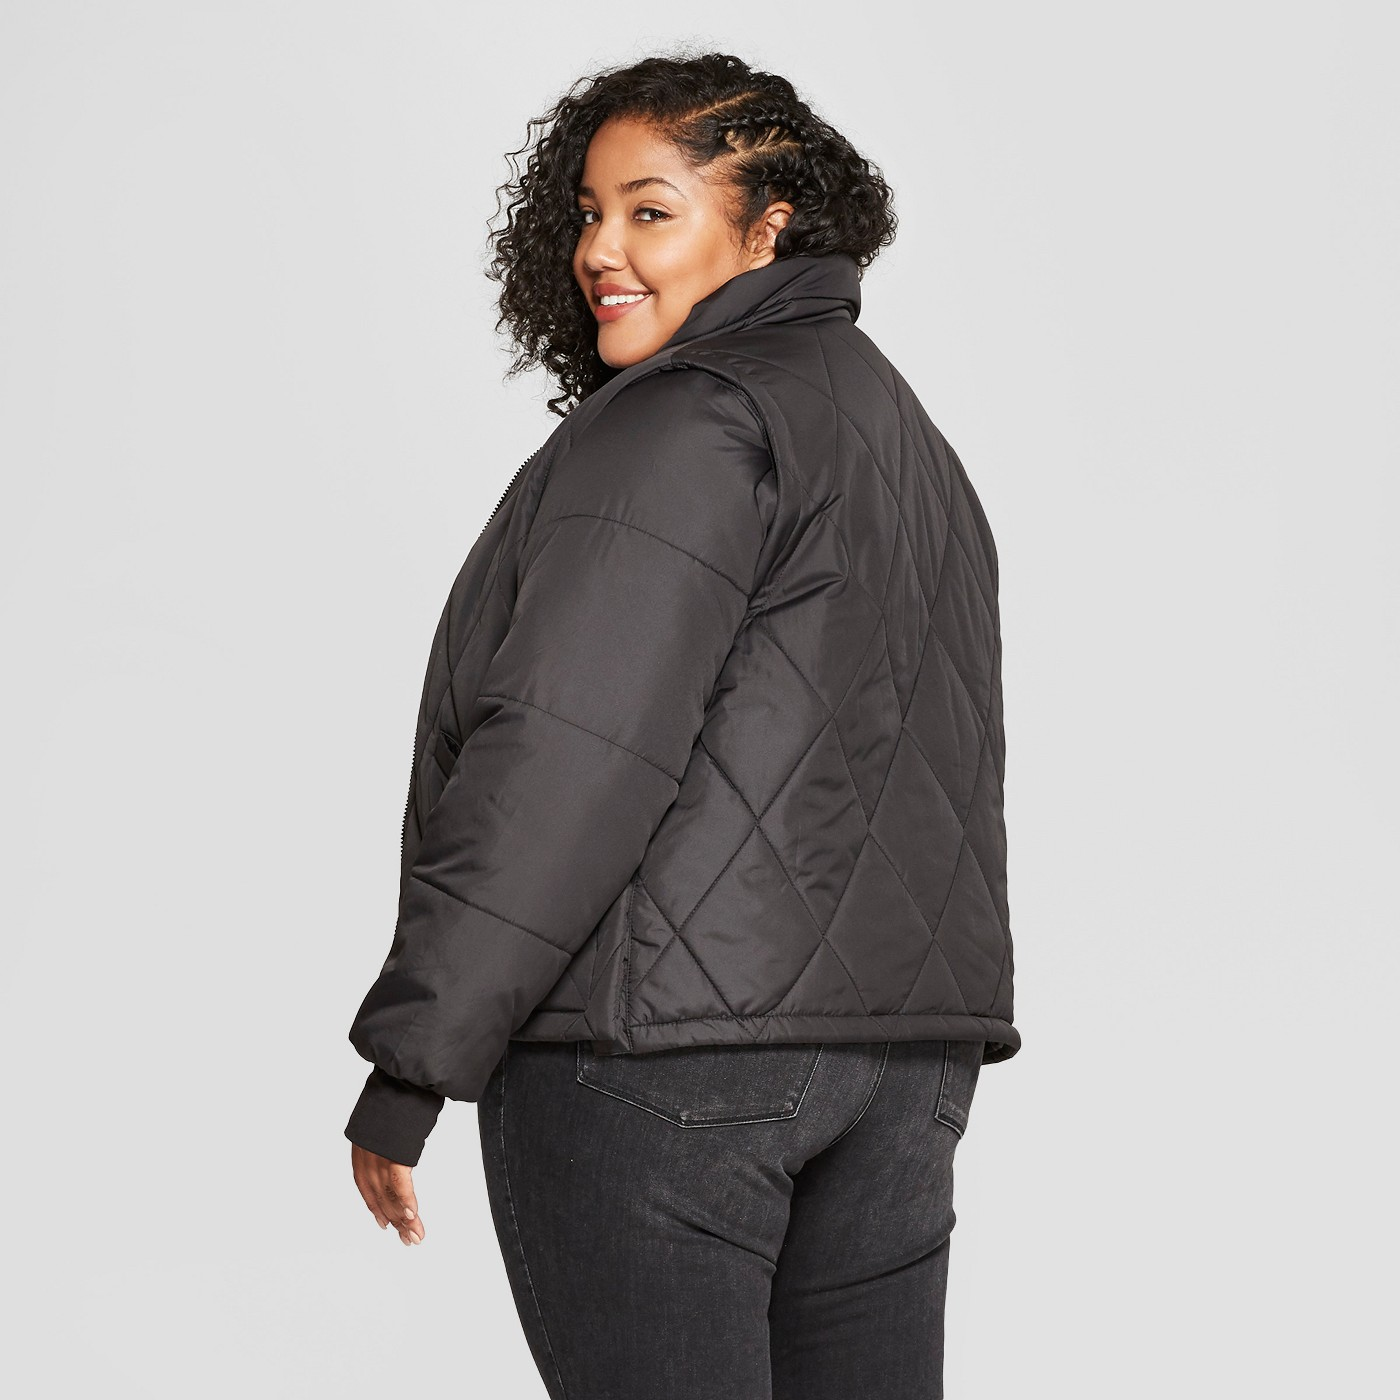 042ce1d19ad1 https://www.refinery29.com/en-us/target-winter-clothing-2018 2018-10 ...